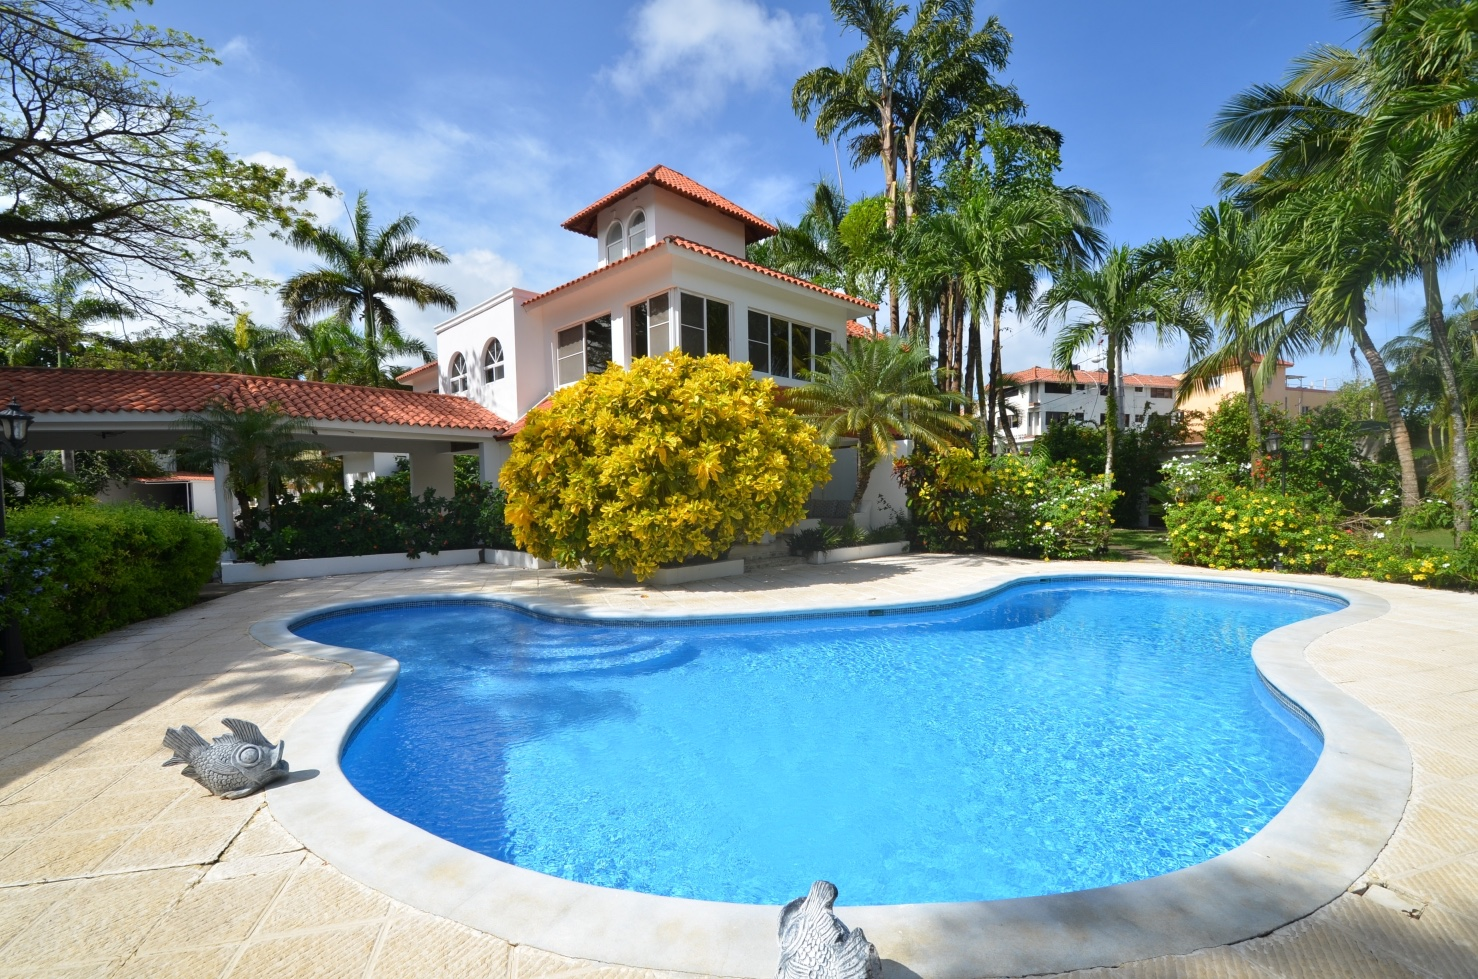 Jacuzzi Pool Villa Bandos 9 Bedroom Villa Rental Jacuzzi Private Pool Sosua